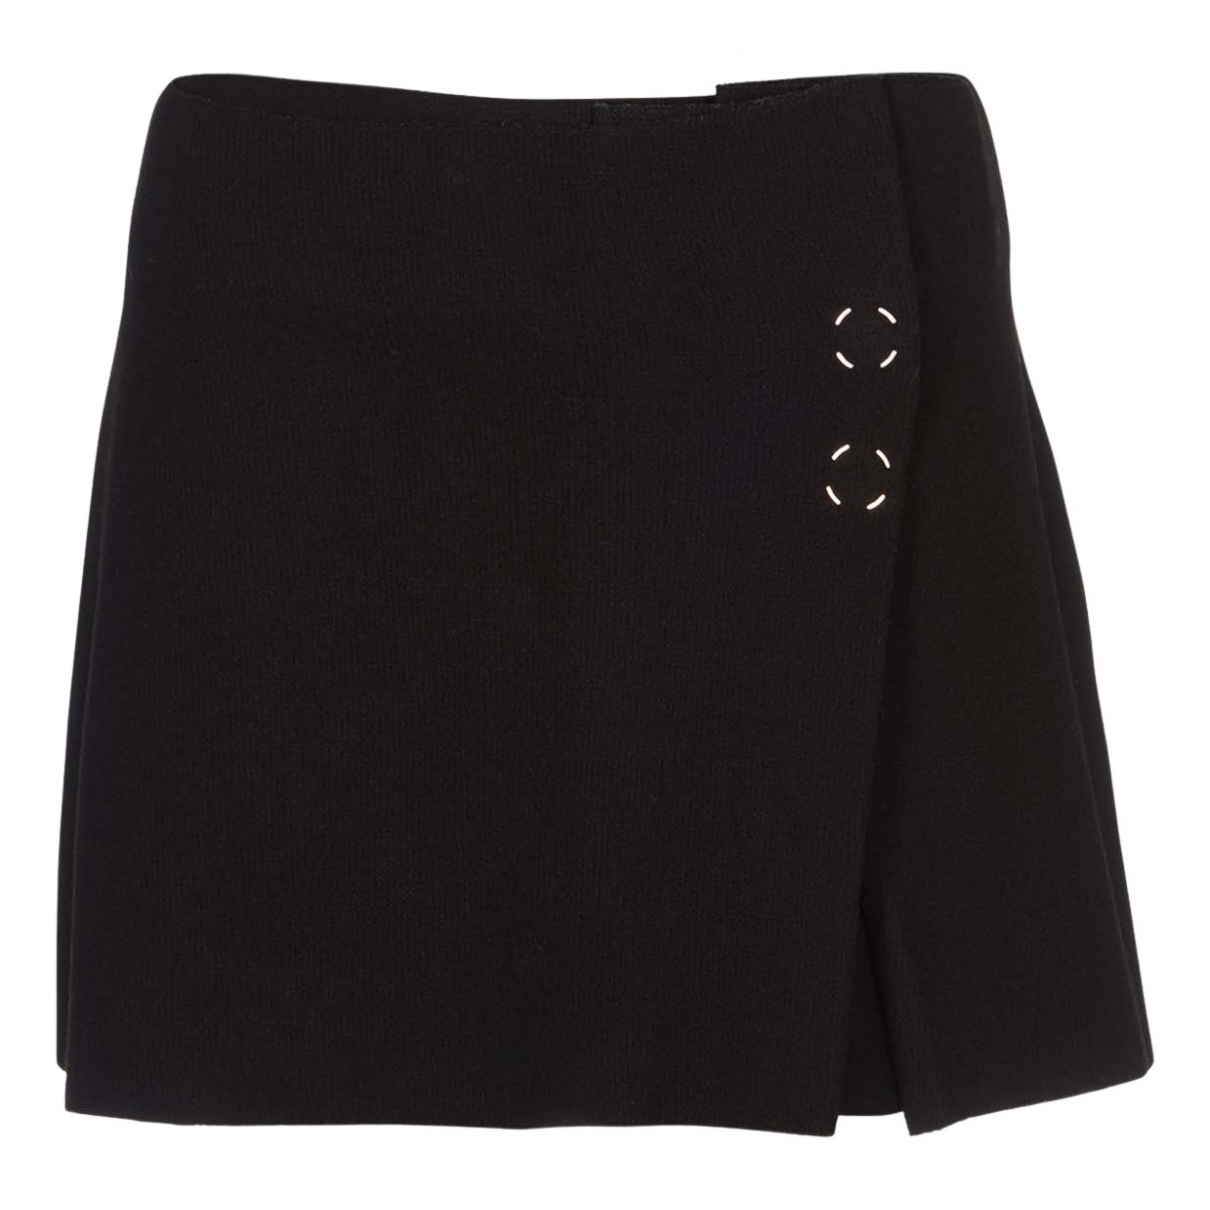 Acne Studios N Black Wool skirt for Women 6 UK